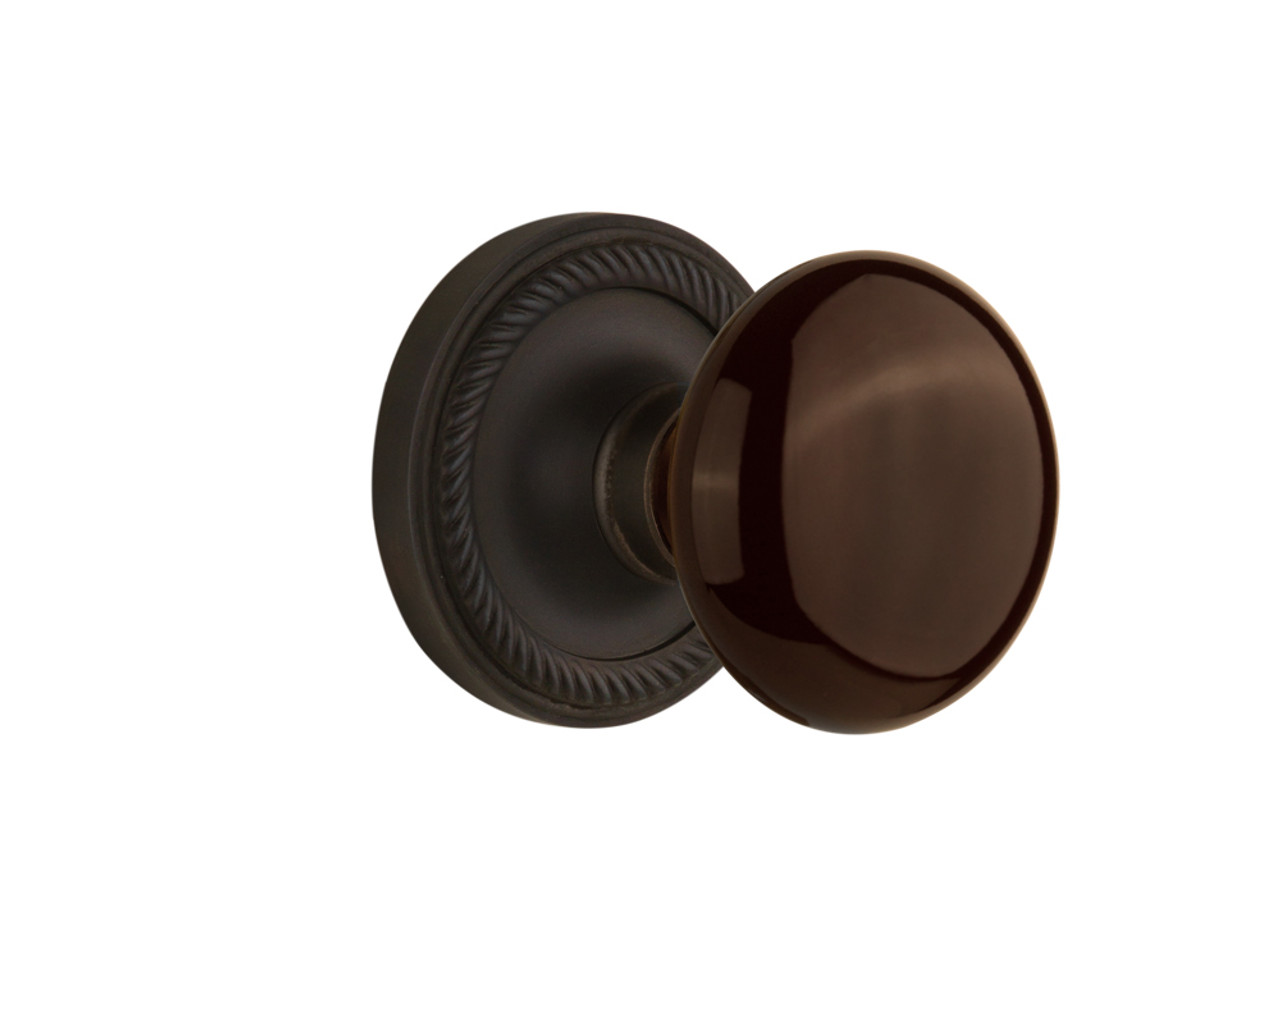 Nostalgic Warehouse Rope Rosette Double Dummy Brown Porcelain Door Knob in Oil-Rubbed Bronze (NW-710663)